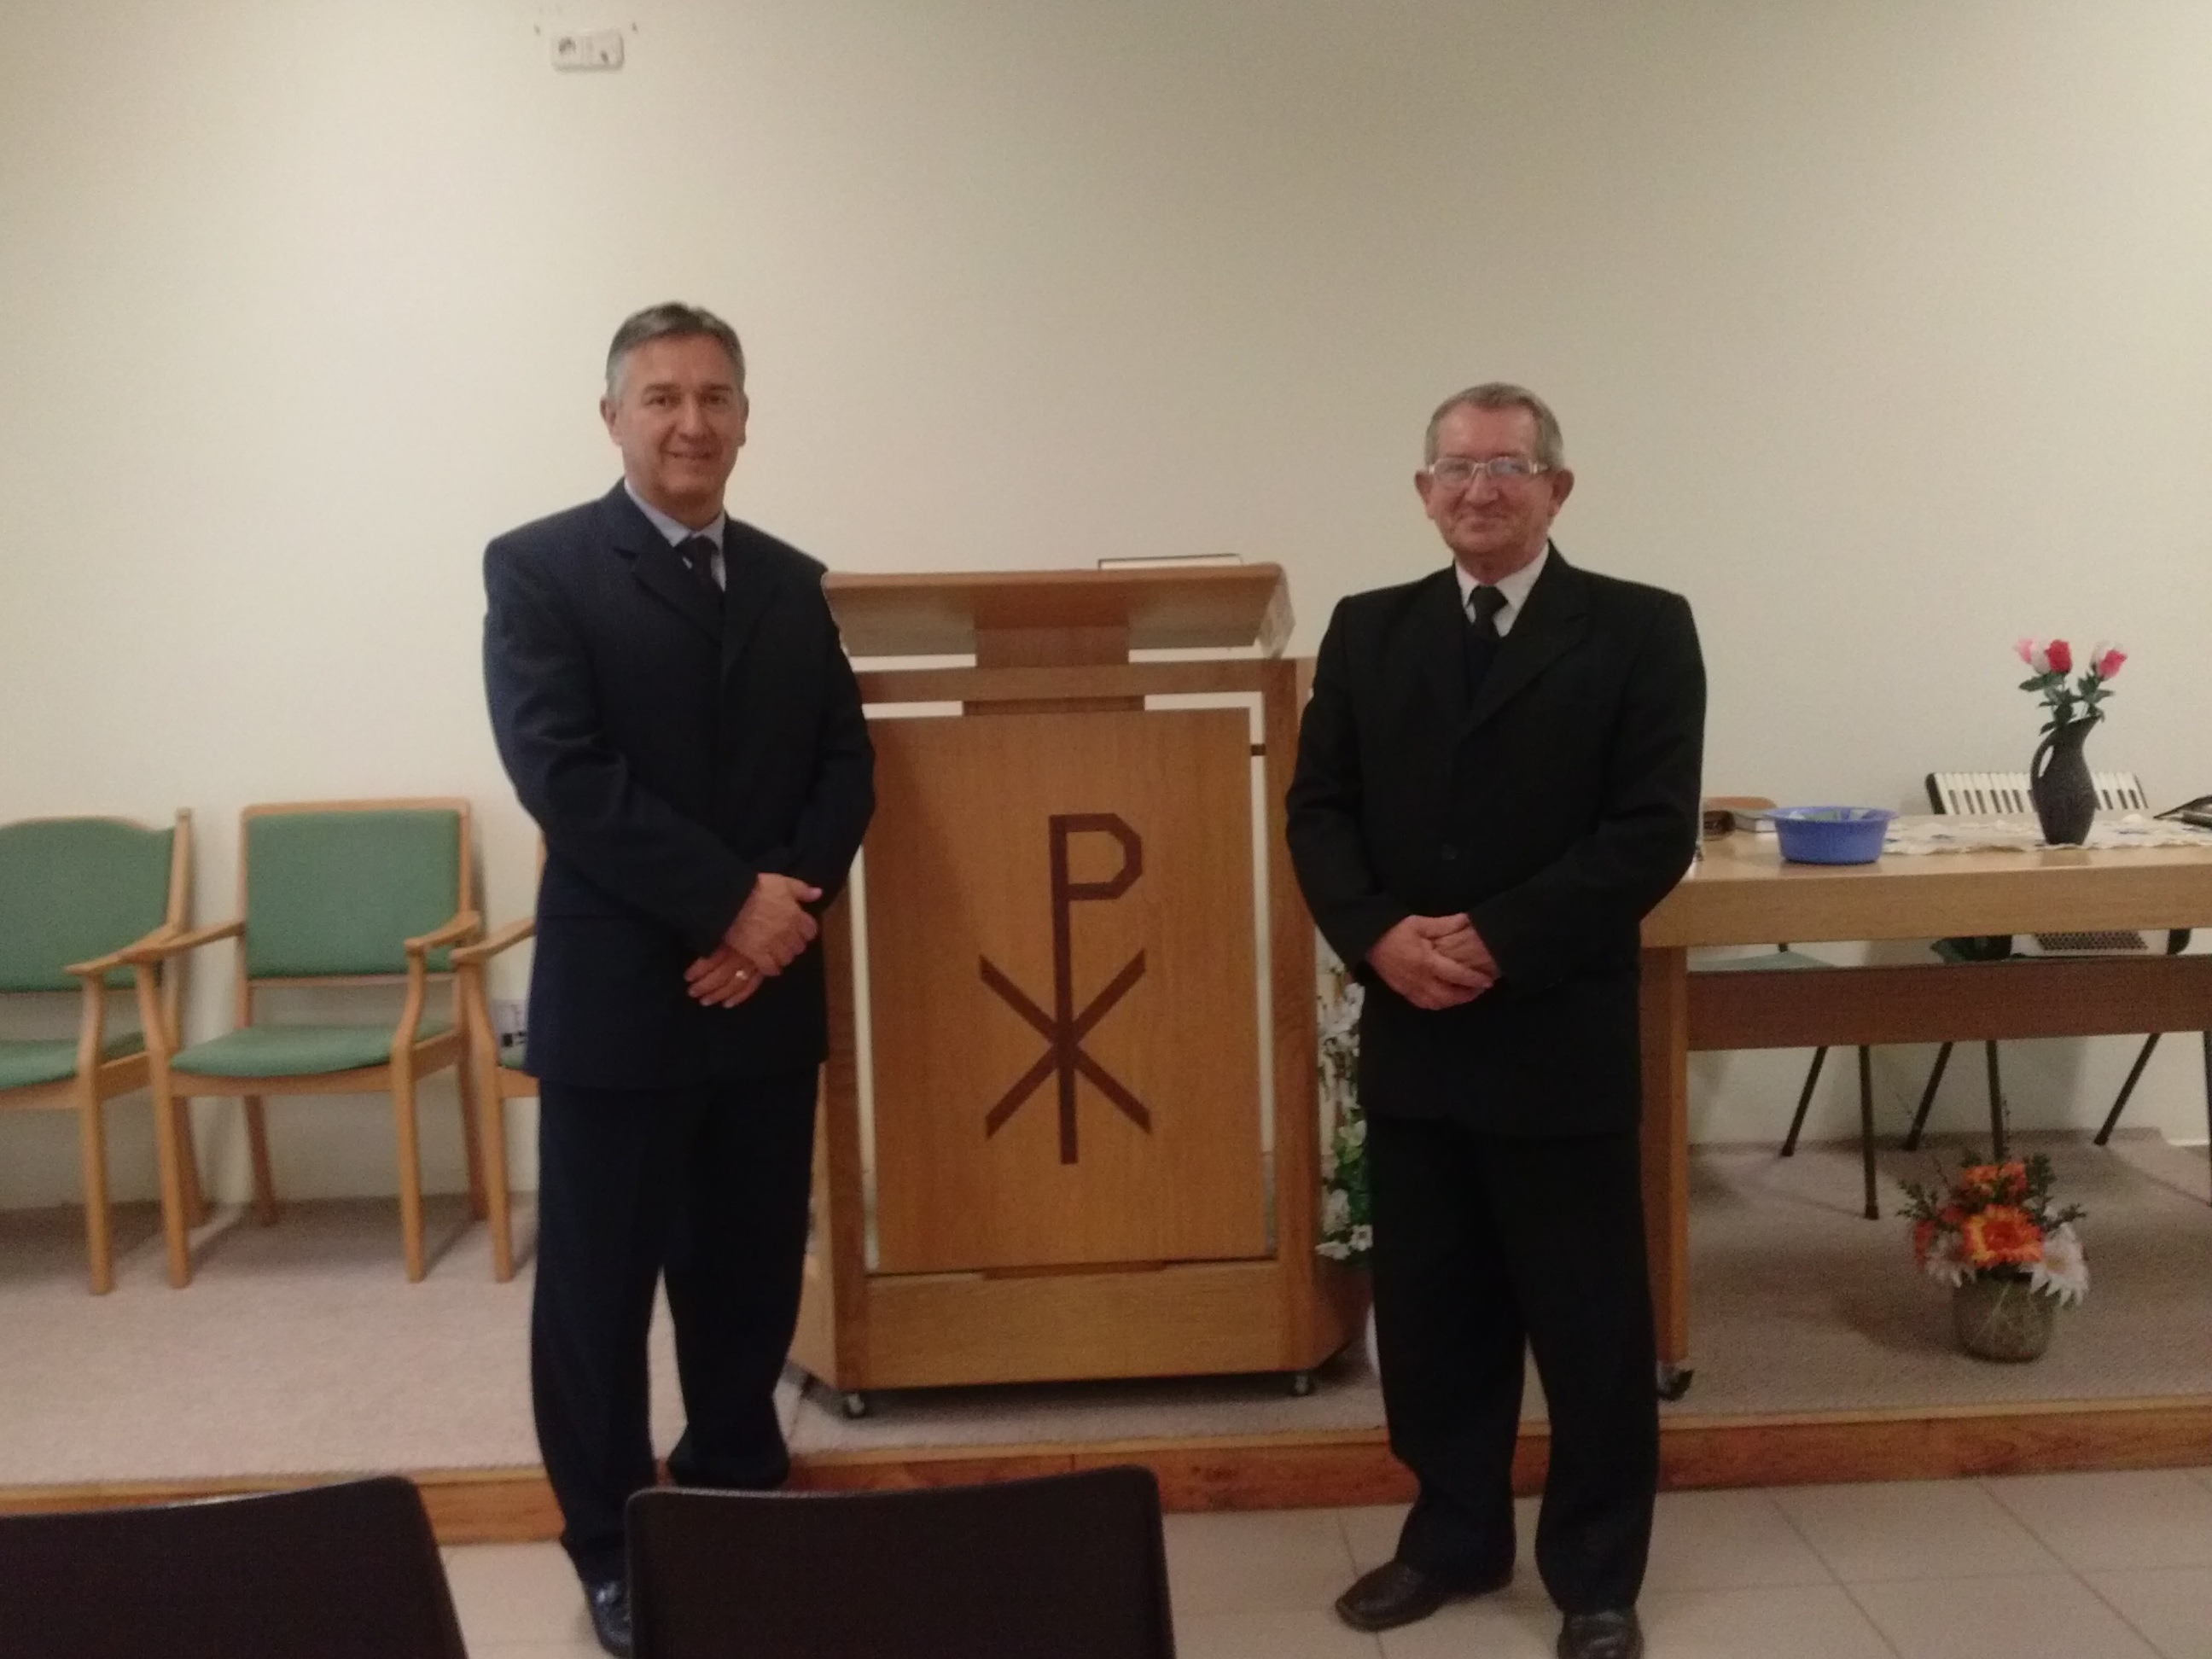 Pict. 2: Service in Albis with Pastor Béla Ferenczi